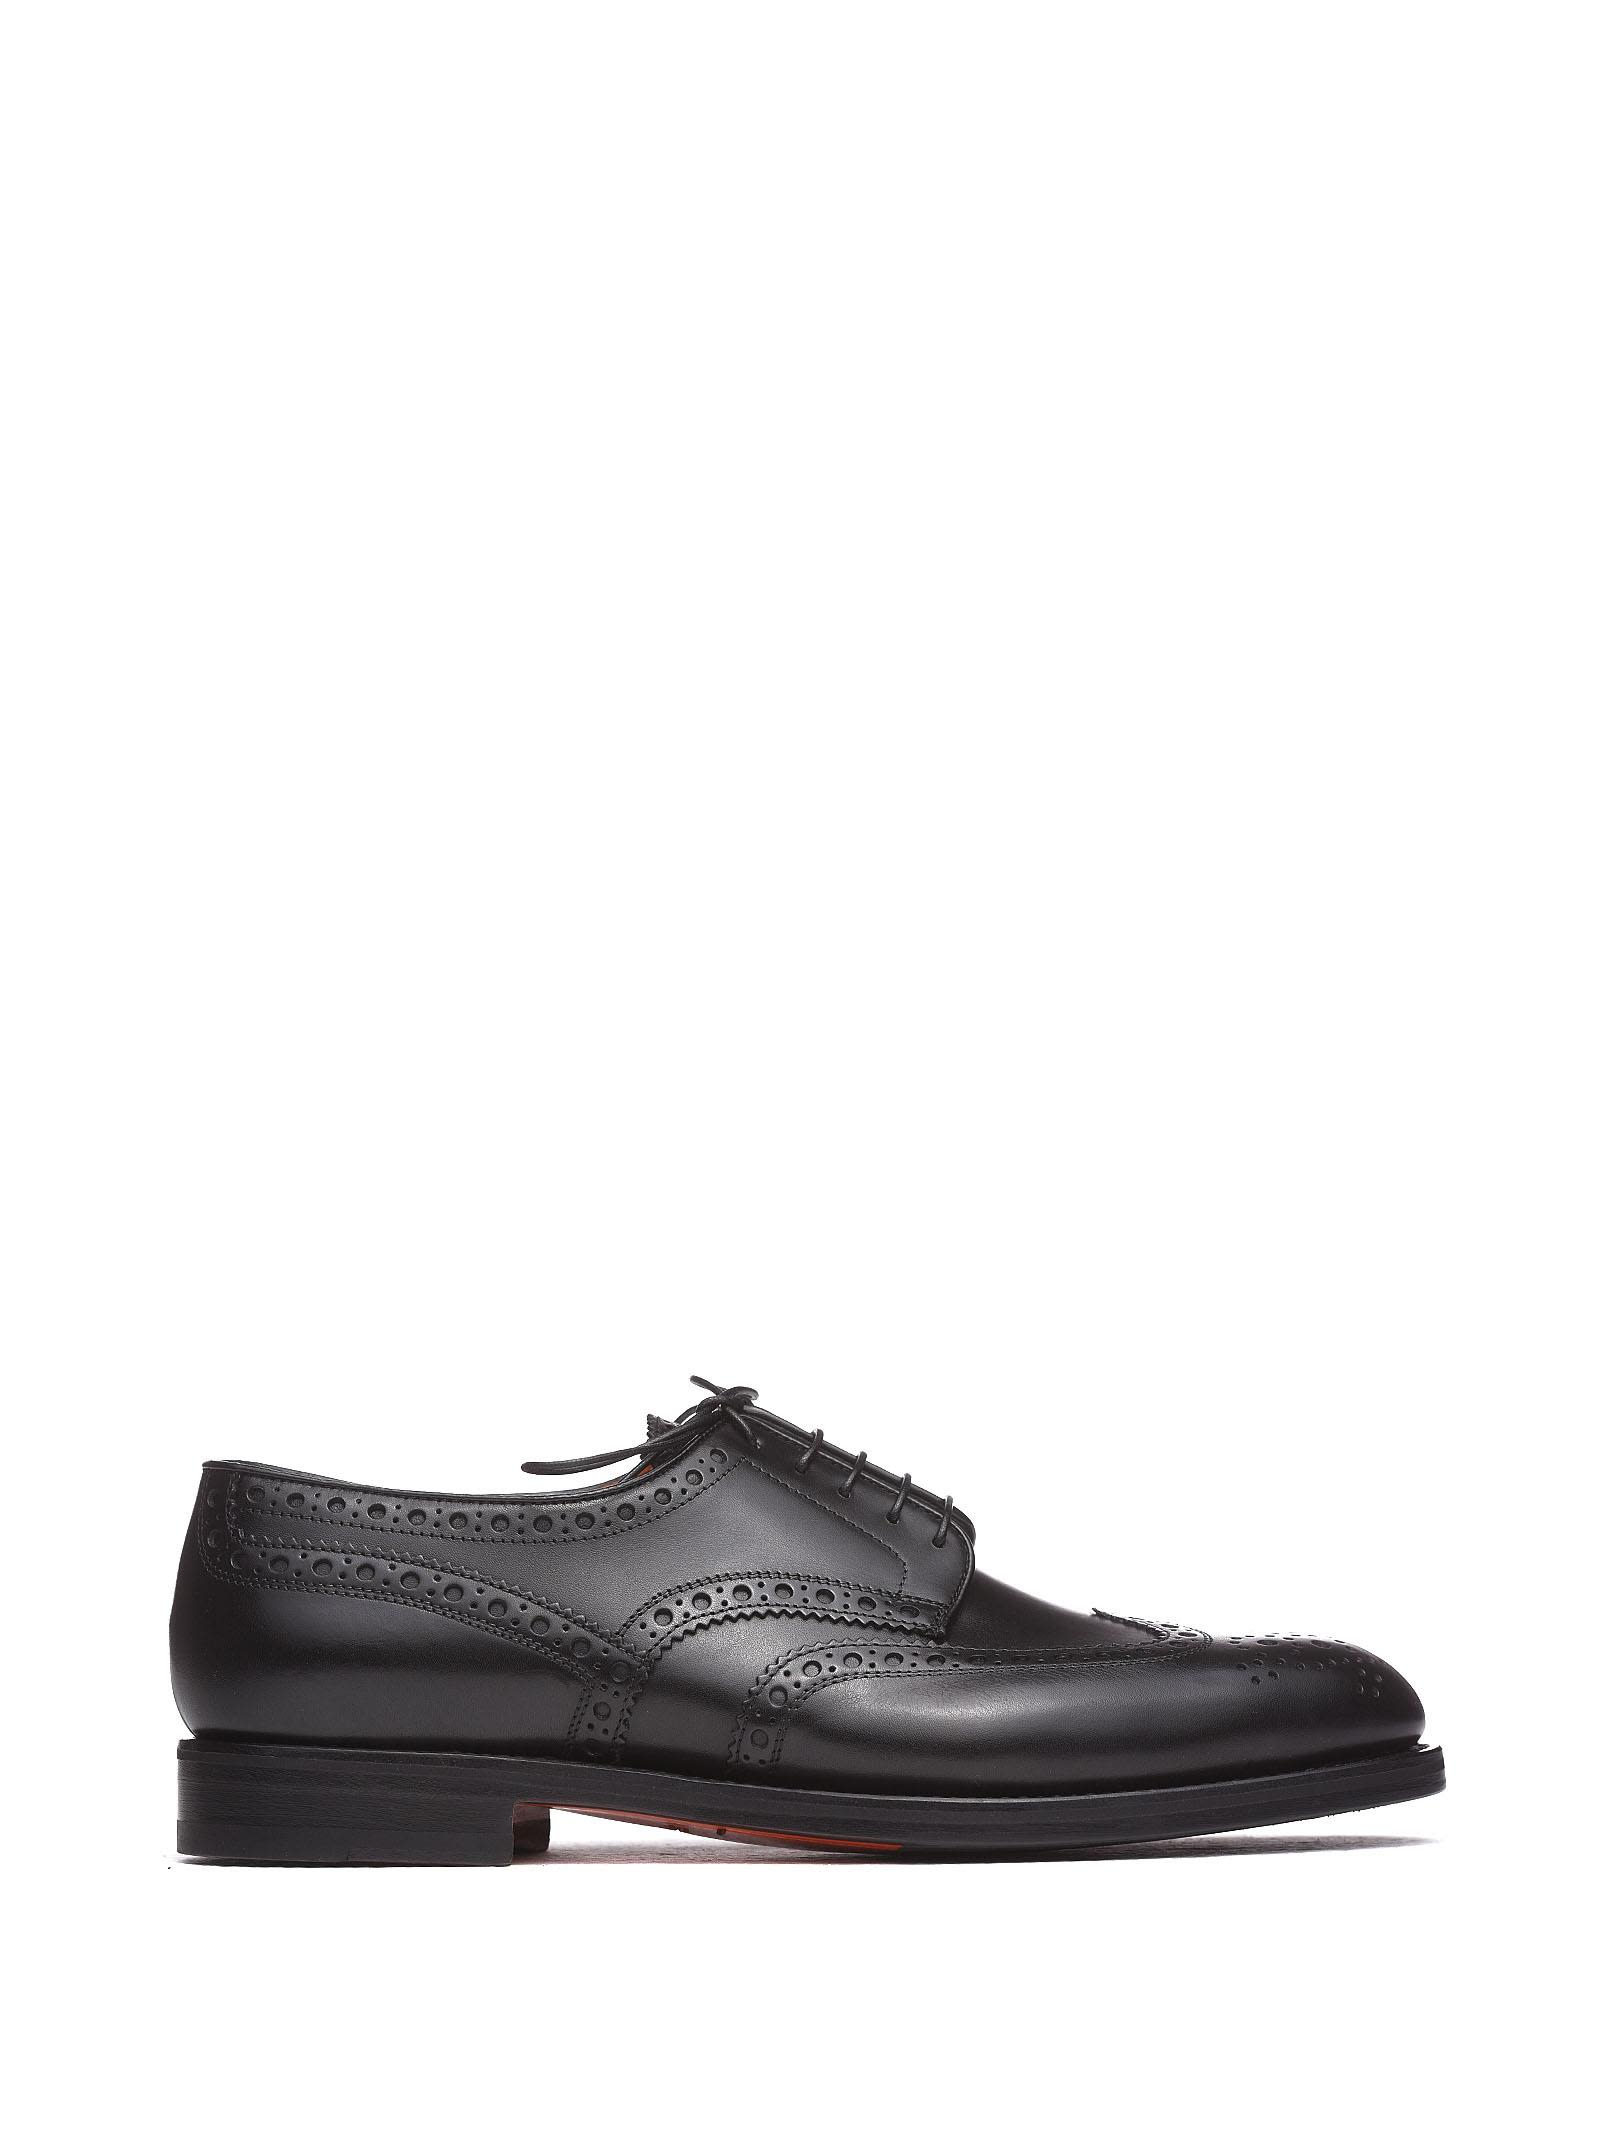 Santoni Black Brogue Shoes